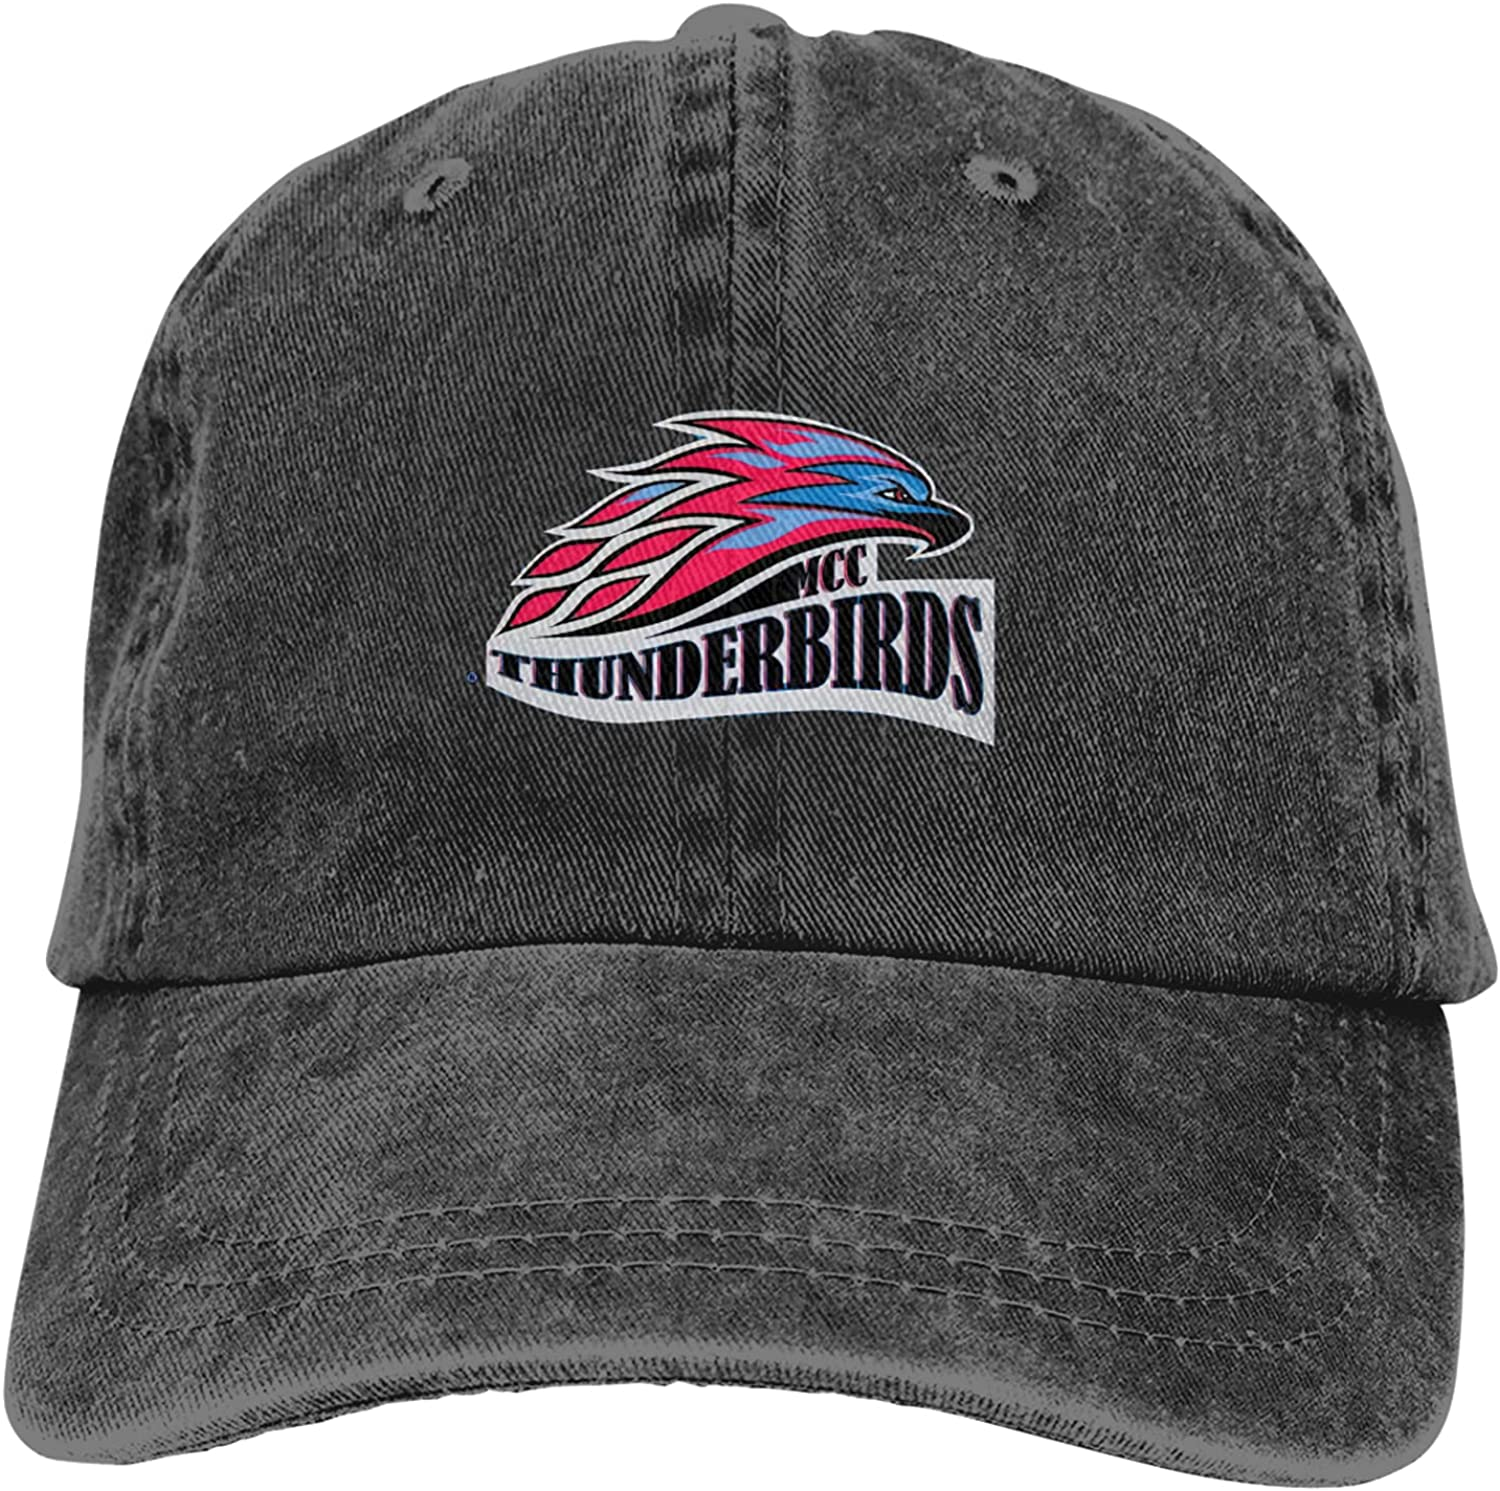 Yund New arrival Mesa Community College Selling and selling Cap Students. Suitable for A